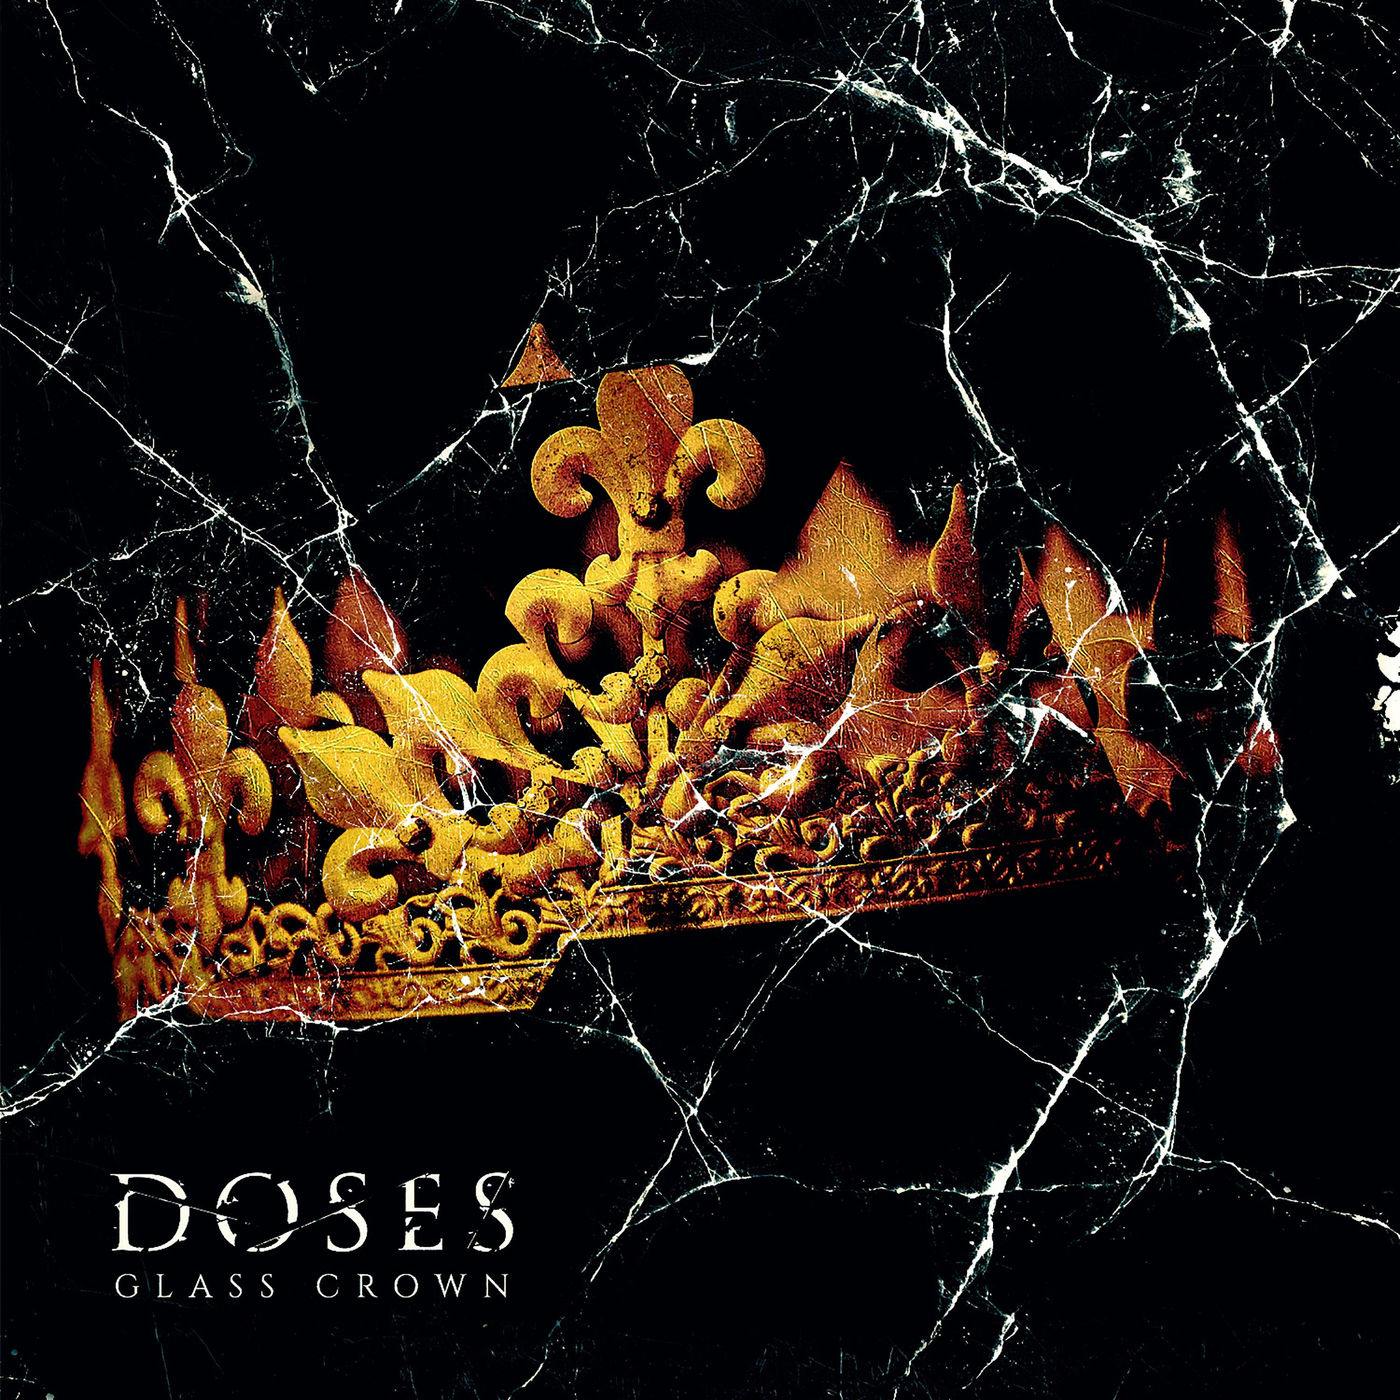 Doses - Glass Crown [single] (2020)